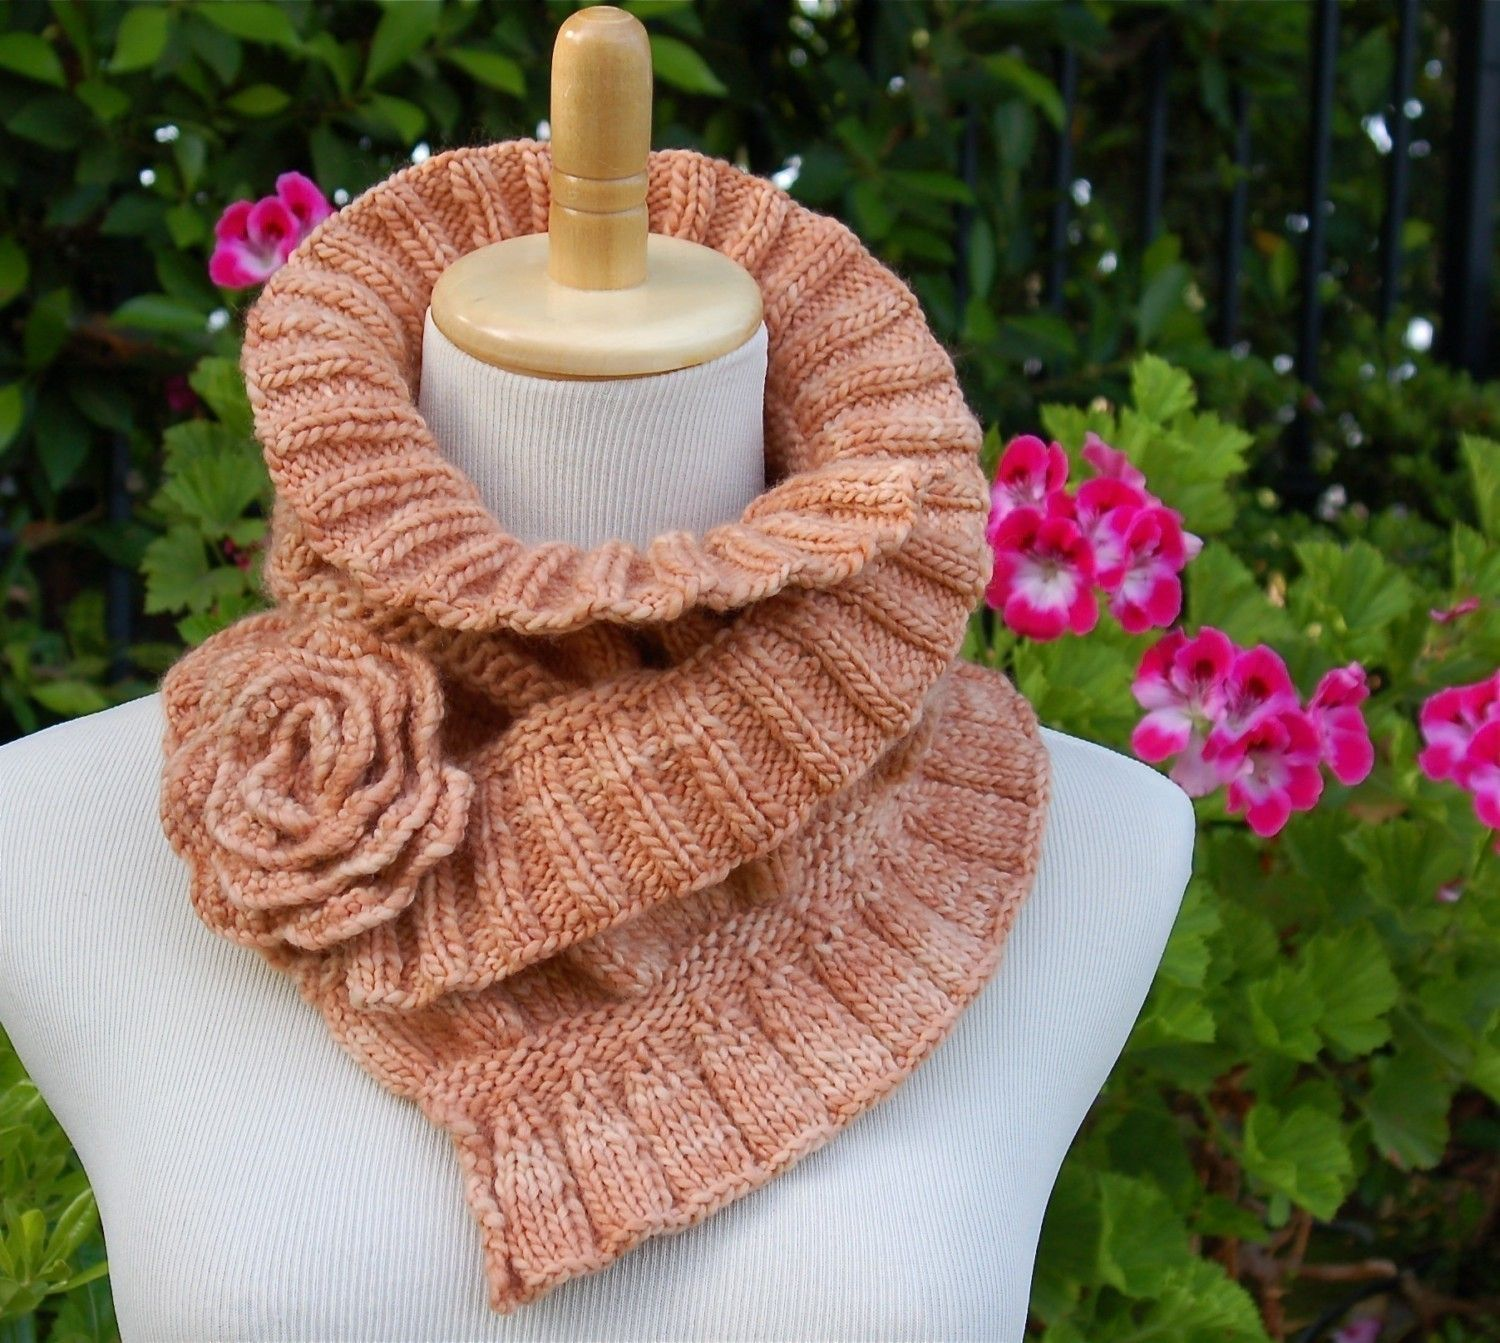 Ruched Cowl Knitting Pattern : Ruffled and Ruched Scarf PDF Knitting Pattern. Scarf Fashions Pinterest ...